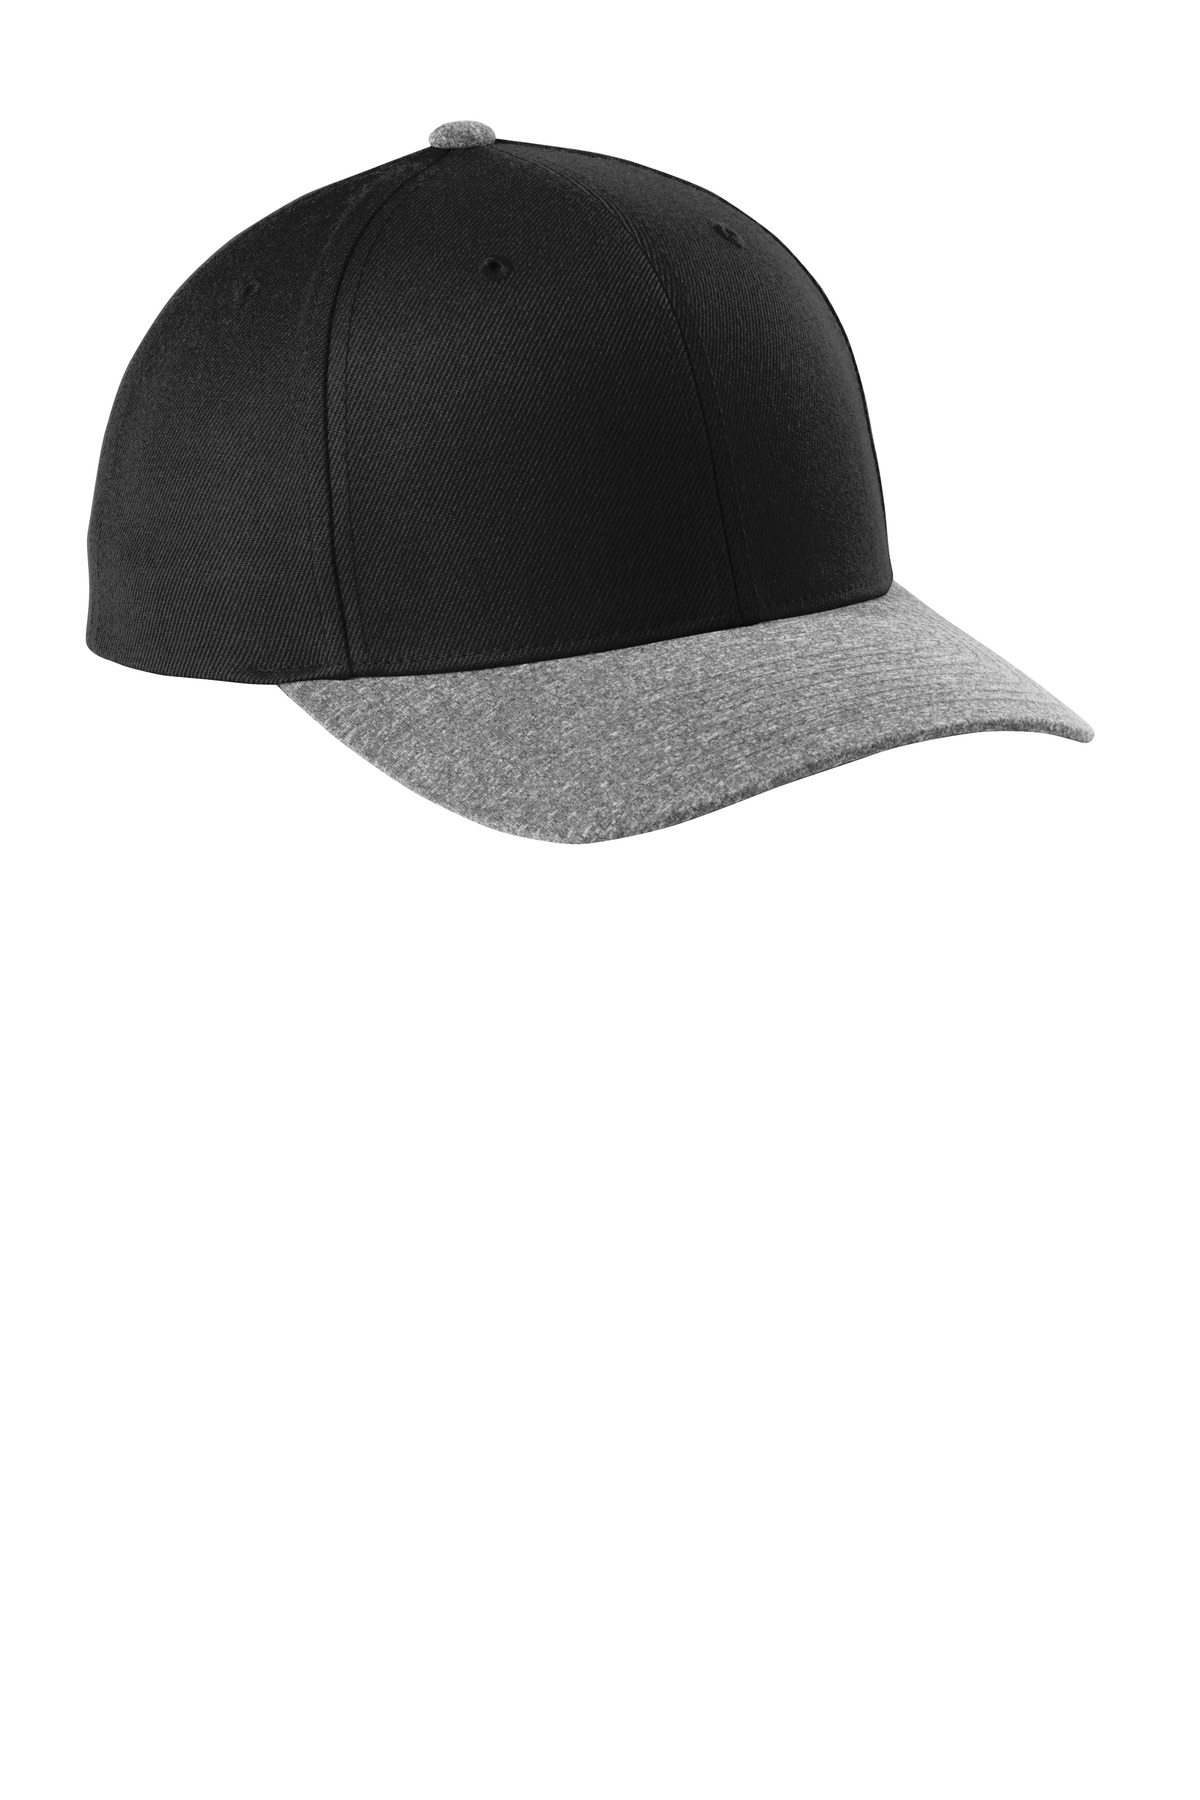 Sport-Tek  ®  Yupoong  ®  Curve Bill Snapback Cap. STC43 - Black/ Grey Heather